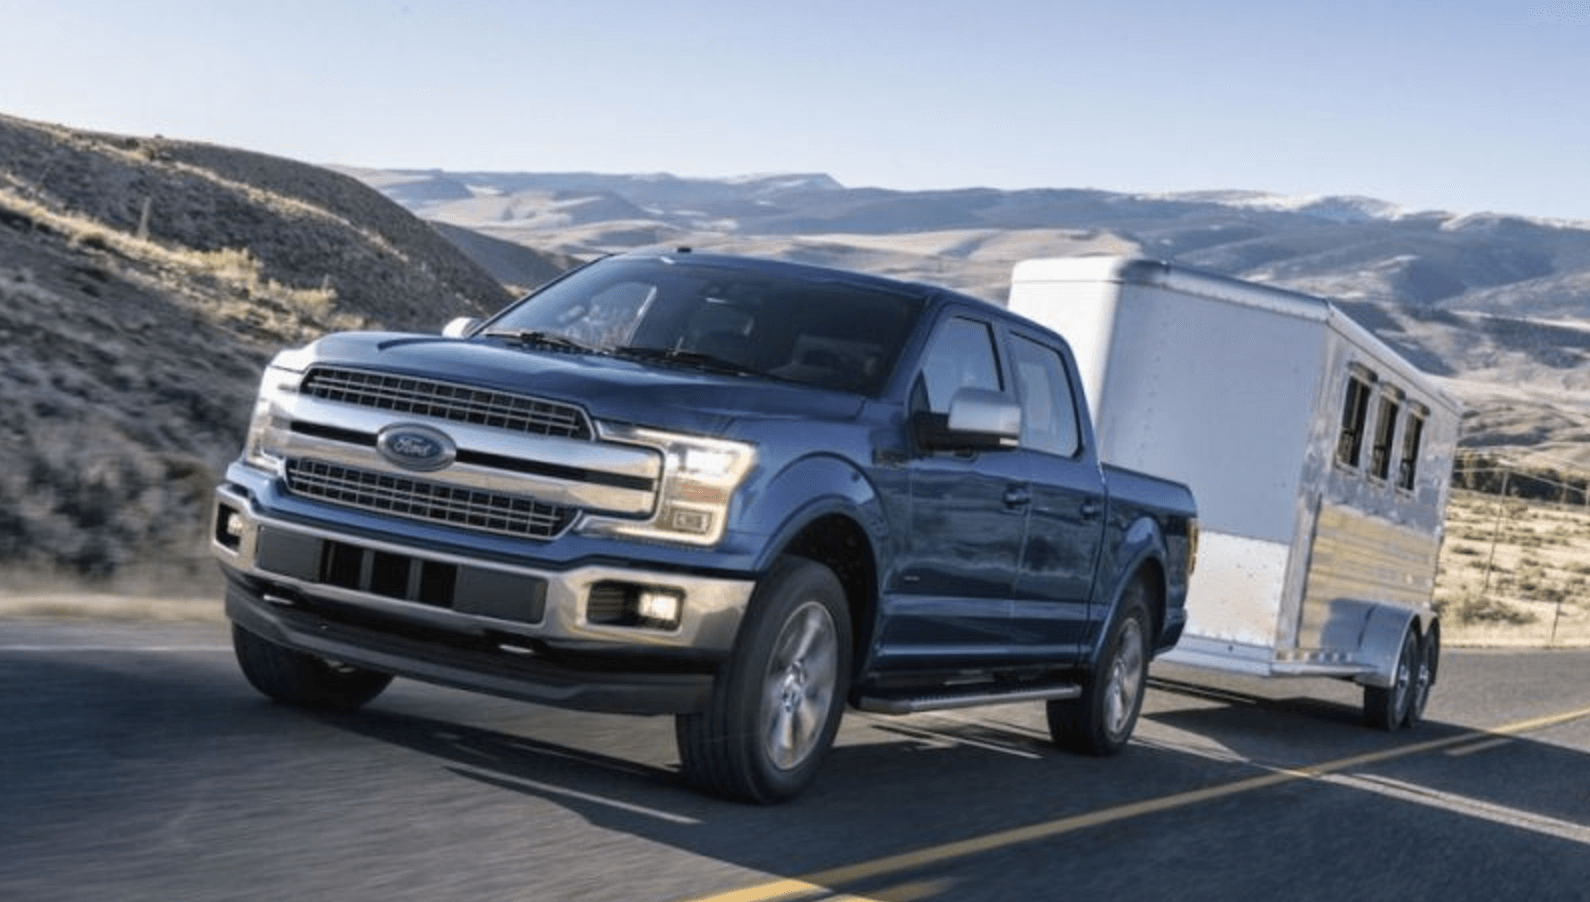 35 All New Ford Ranchero 2020 Model